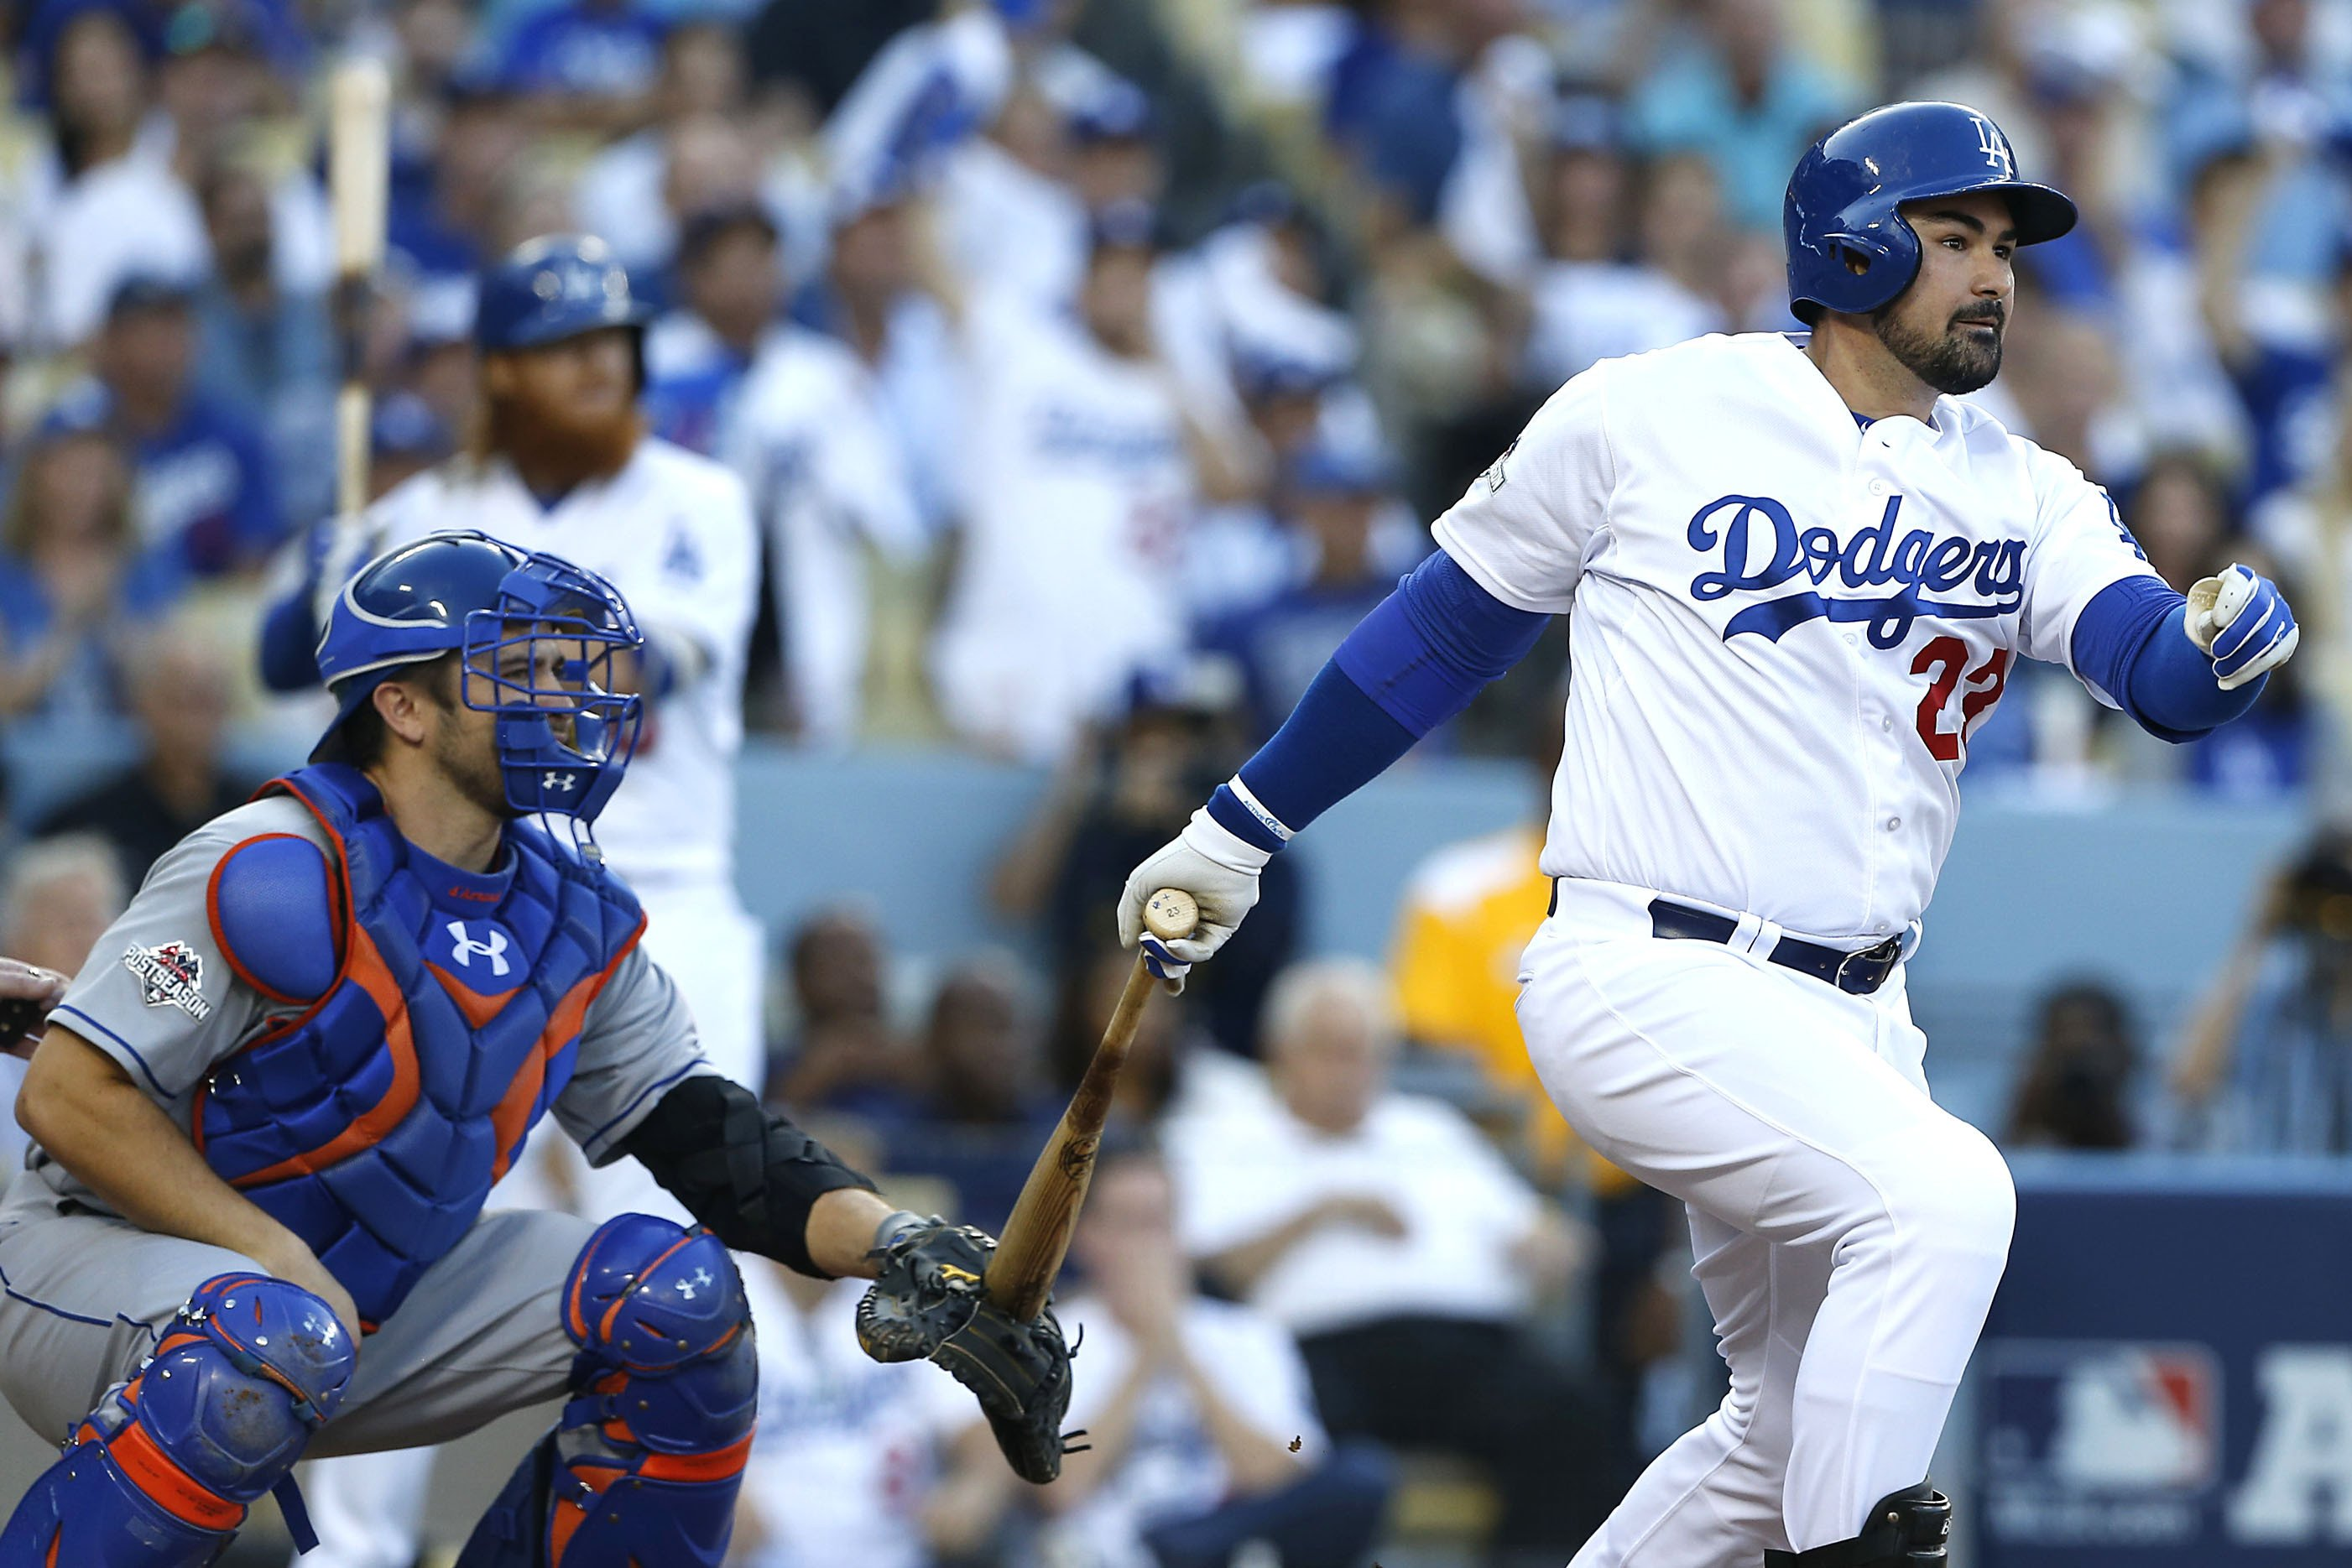 Adrian Gonzalez has inside track to Mets first-base job